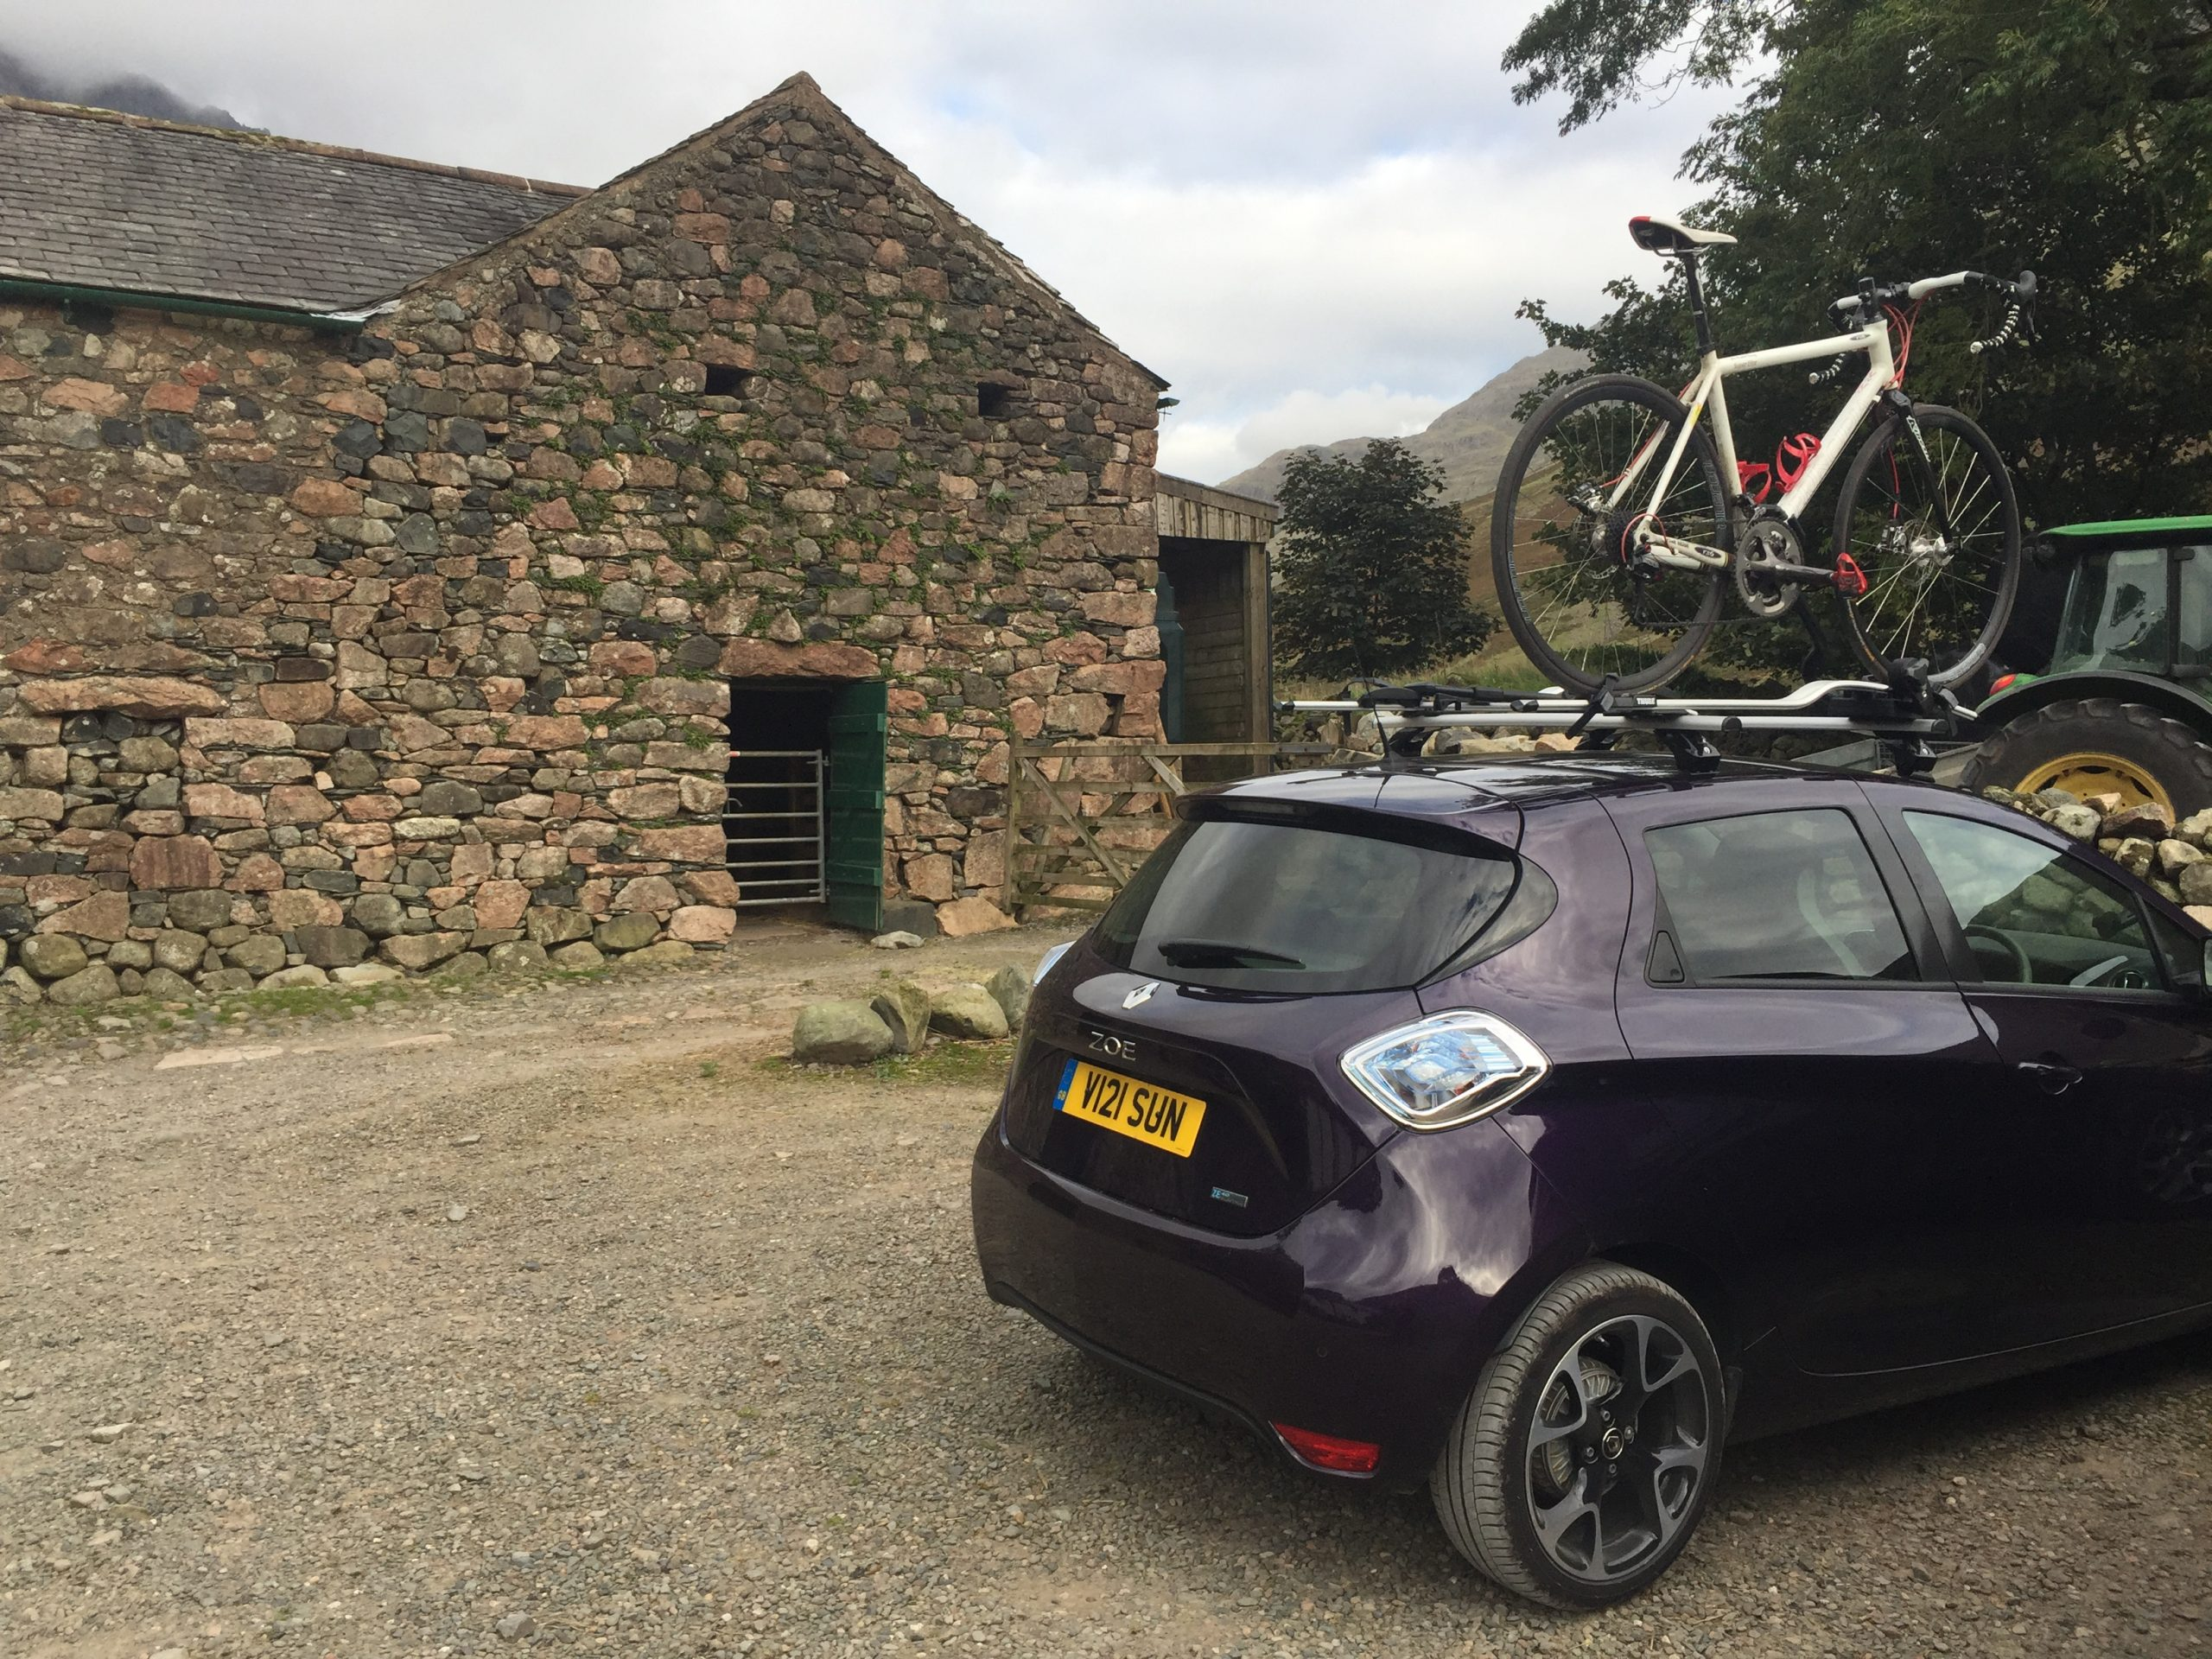 Renault zoe parked in front of a Yorkshire farm style building with a bike on its roof